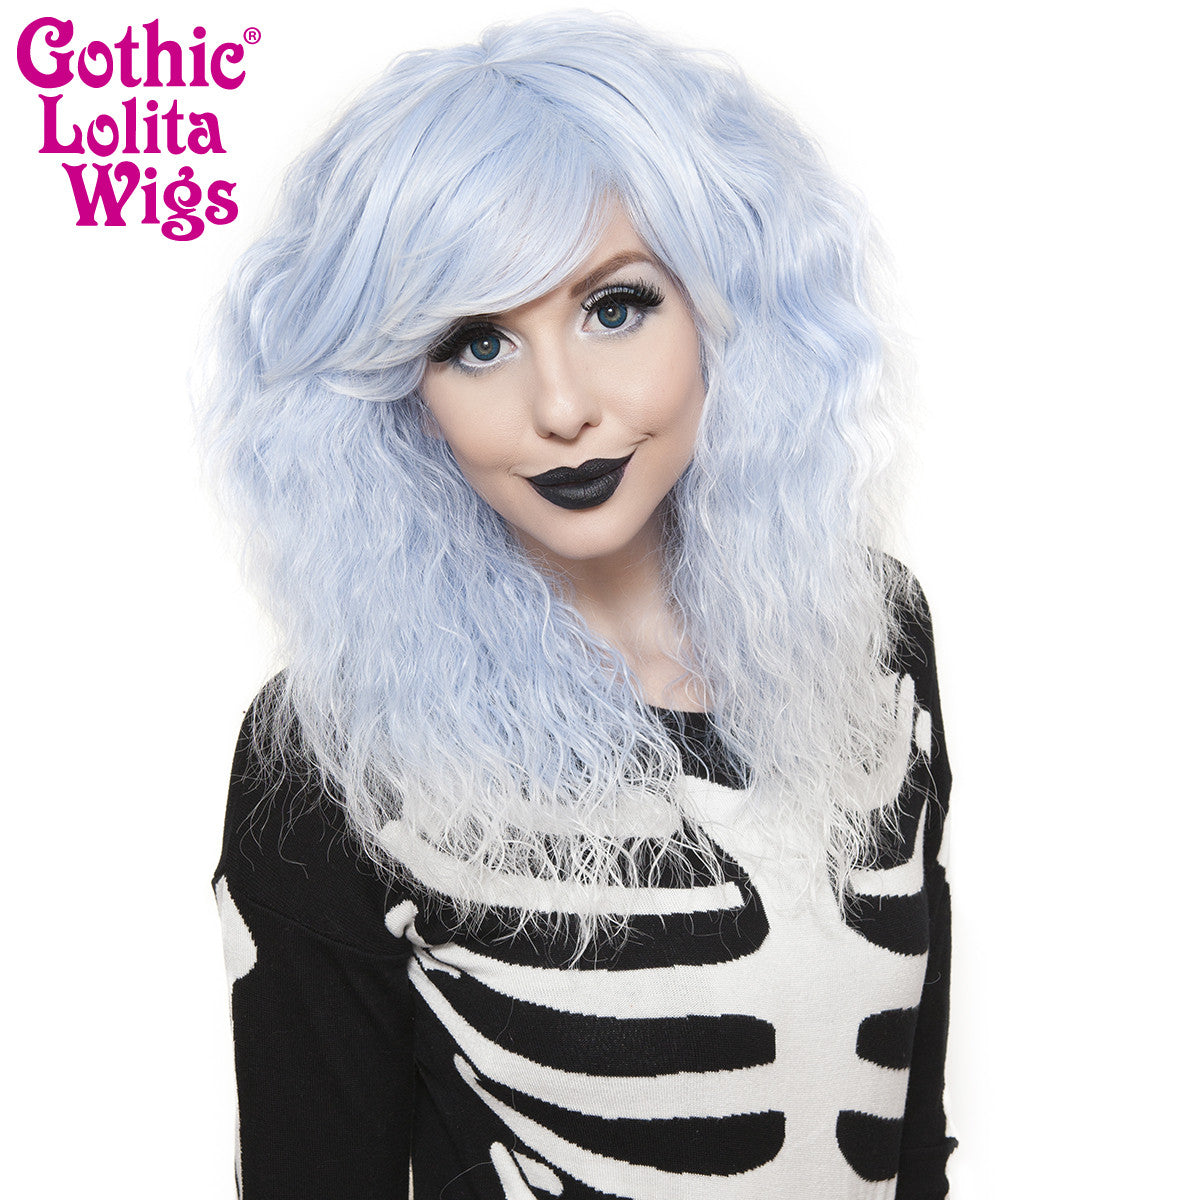 Gothic Lolita Wigs® <br> Rhapsody Short™ Collection - Sax Fade -00892